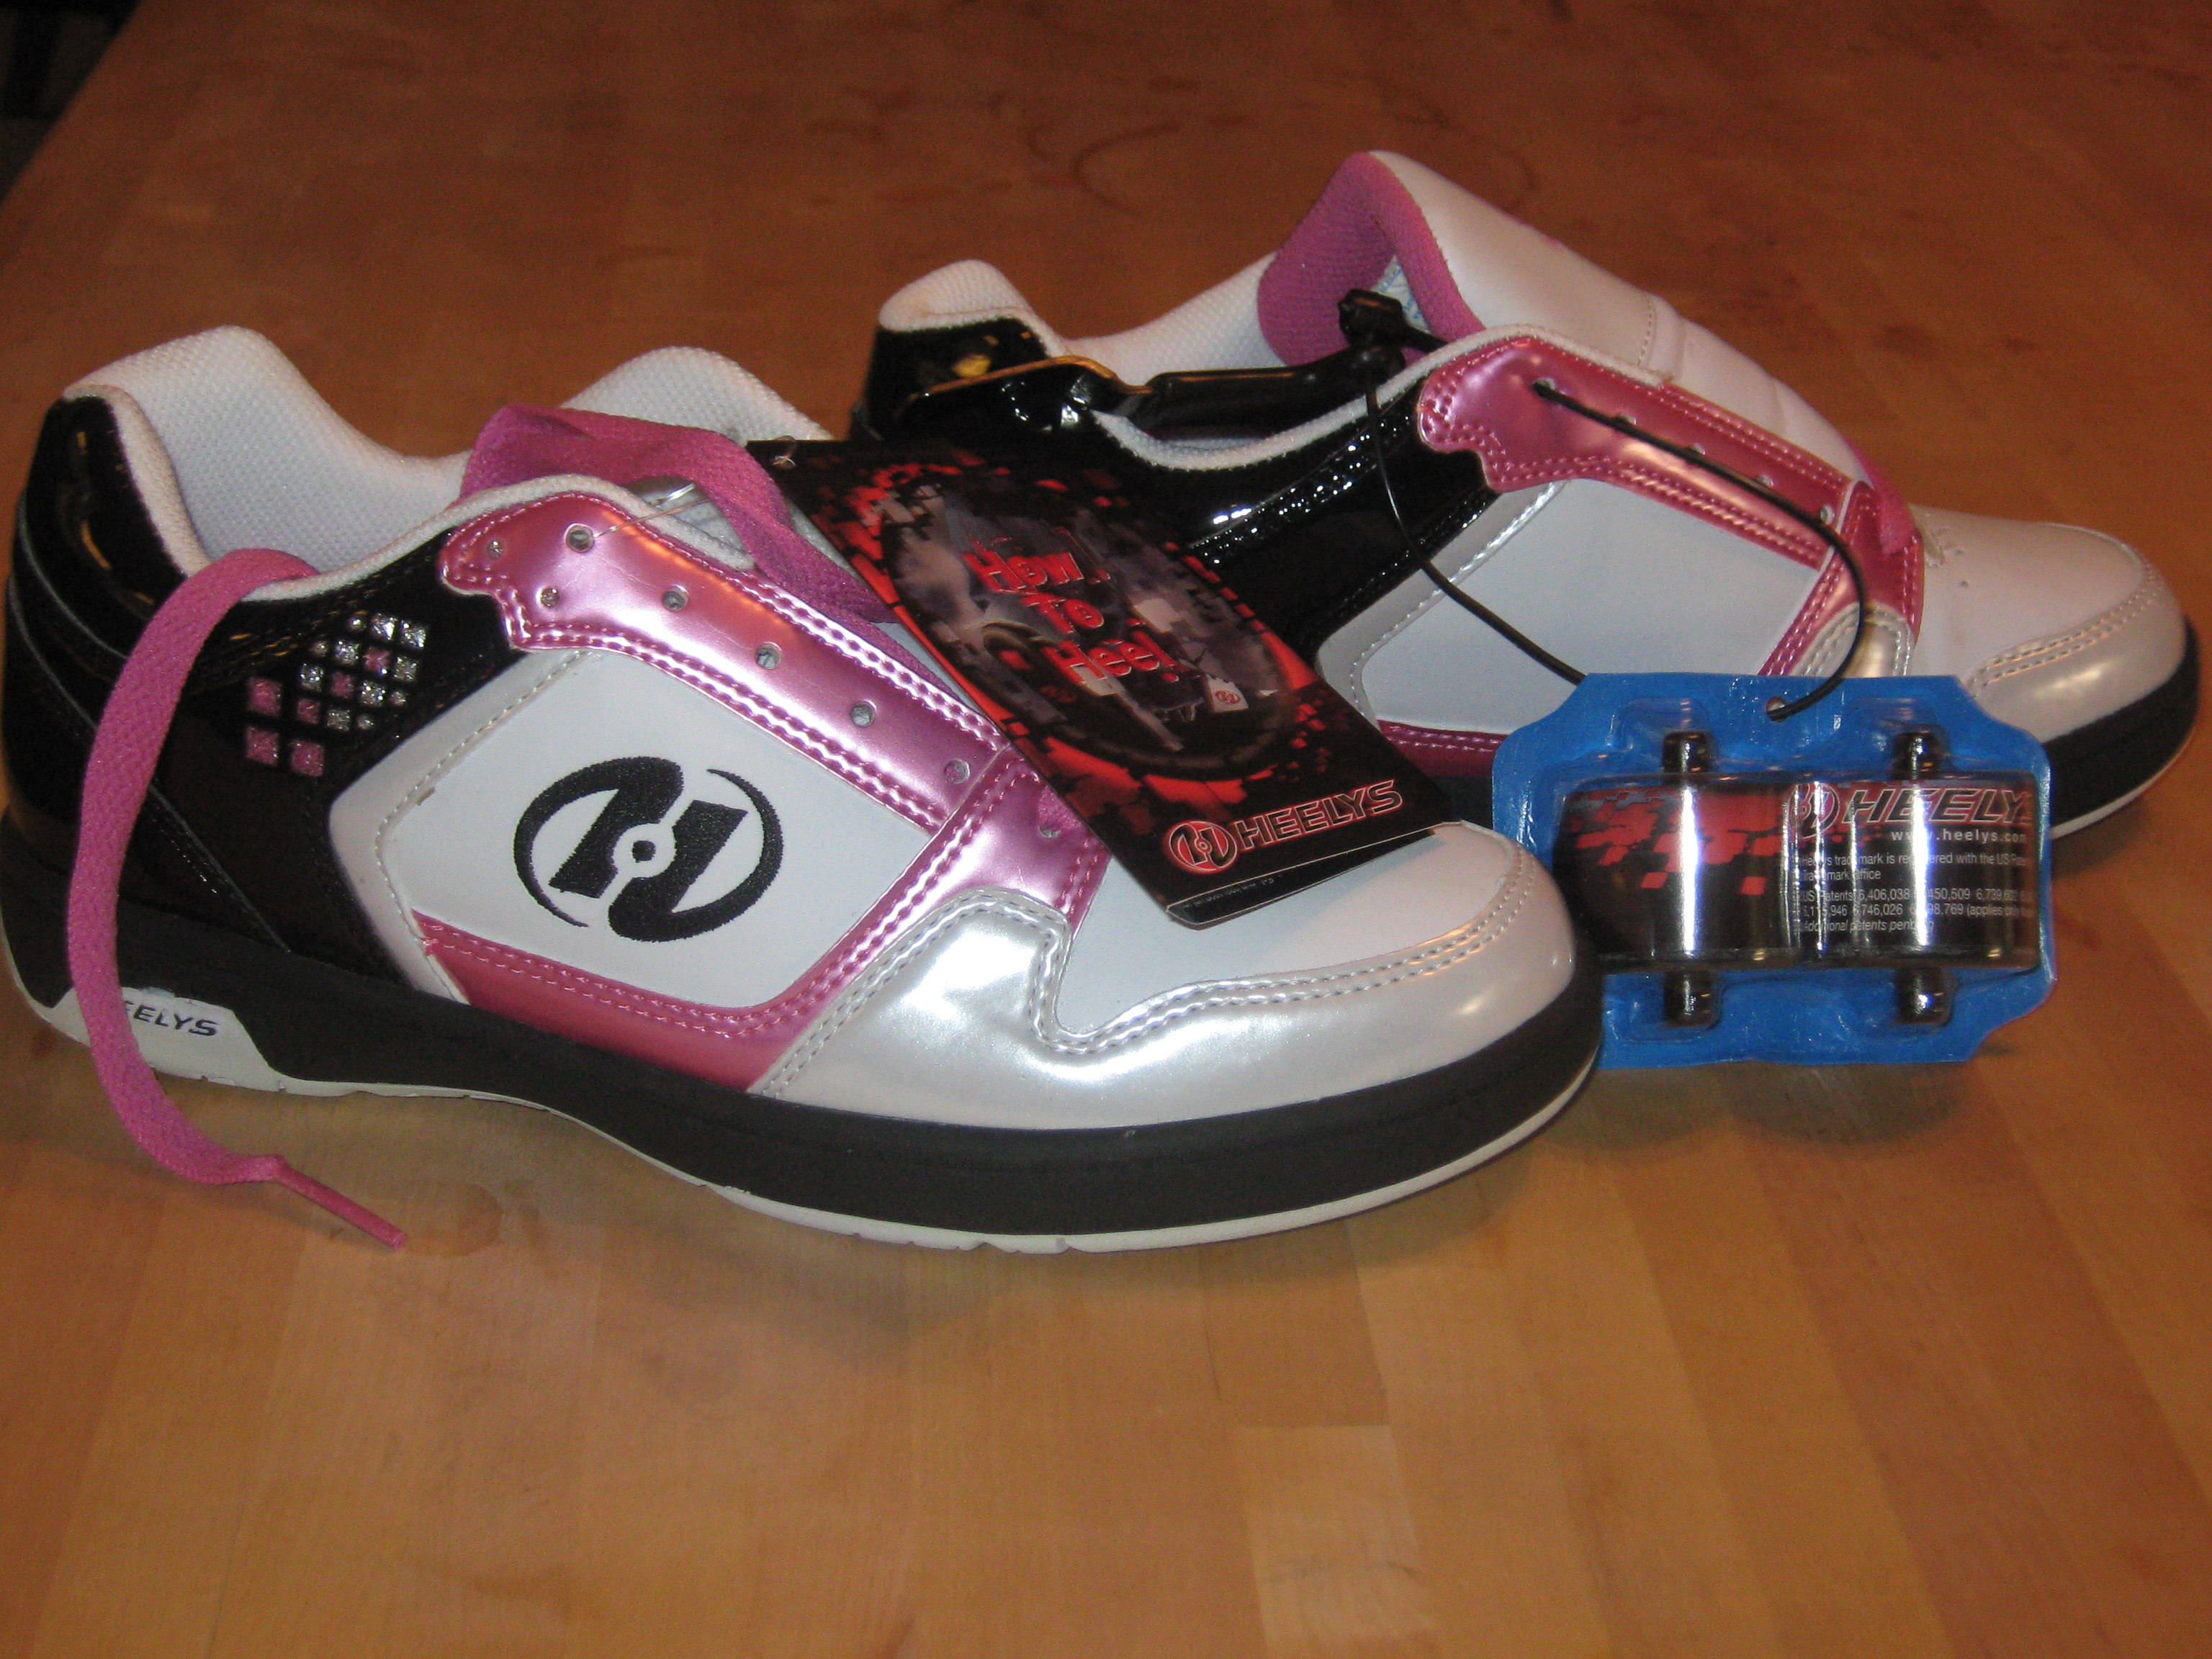 Heely skate shoes reviews - When I Conjure Up Thoughts Of Heely S Brand Skating Shoes